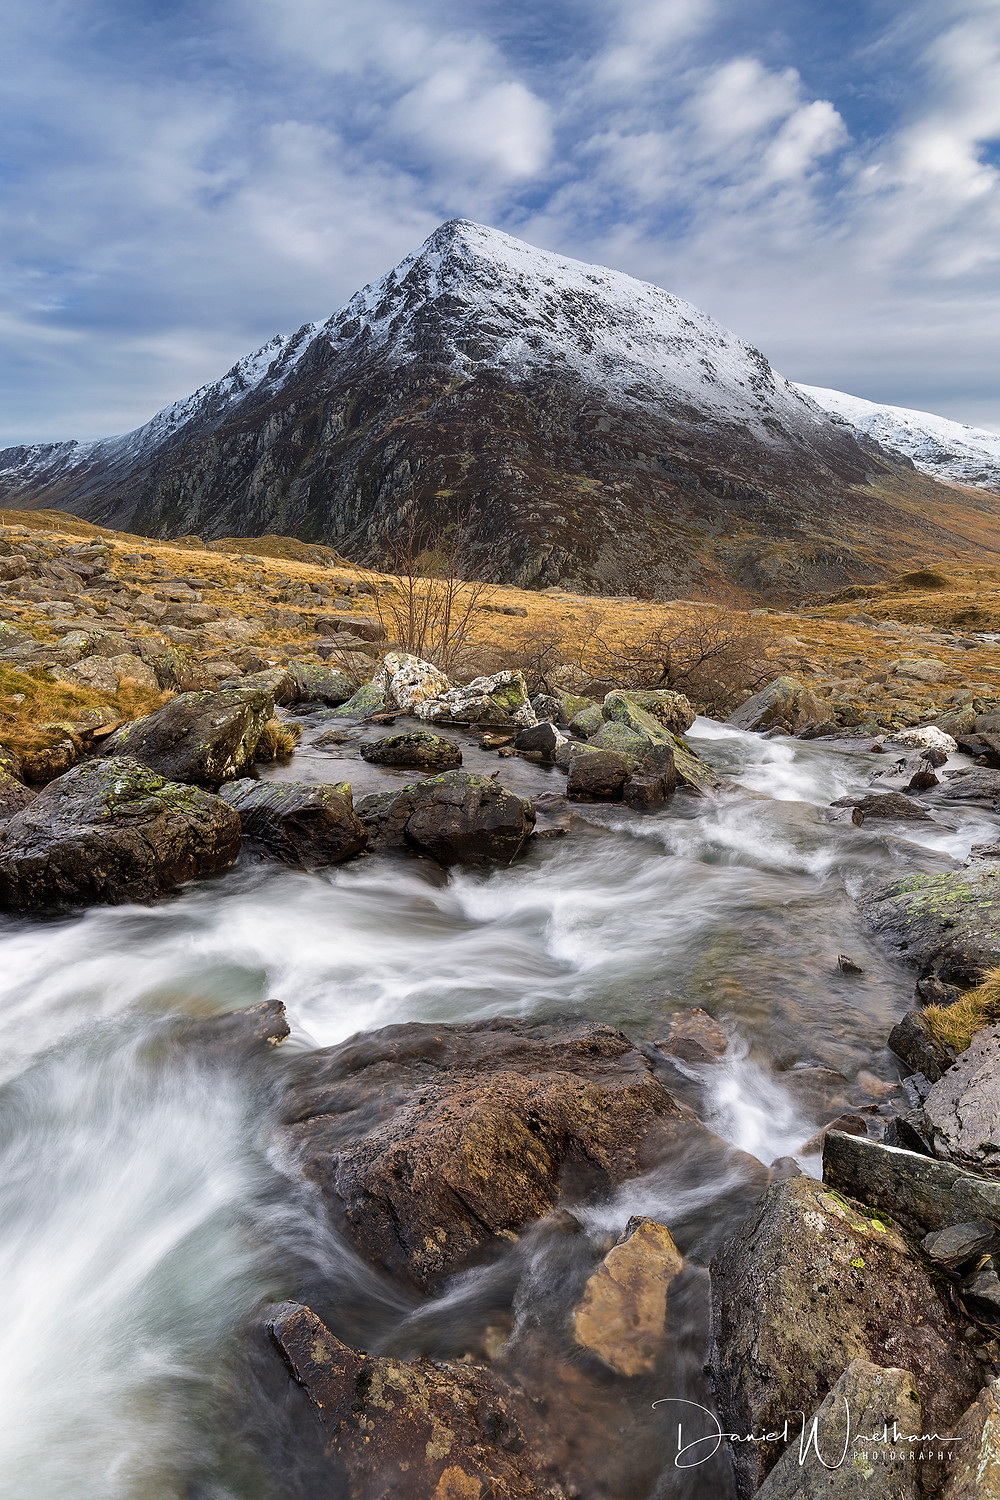 Snowdonia, Snowdon View, Landscape Photography, Blog, Daniel Wretham, Light, Photographing Snowdonia, Pen yr Ole Wen, Mountain stream